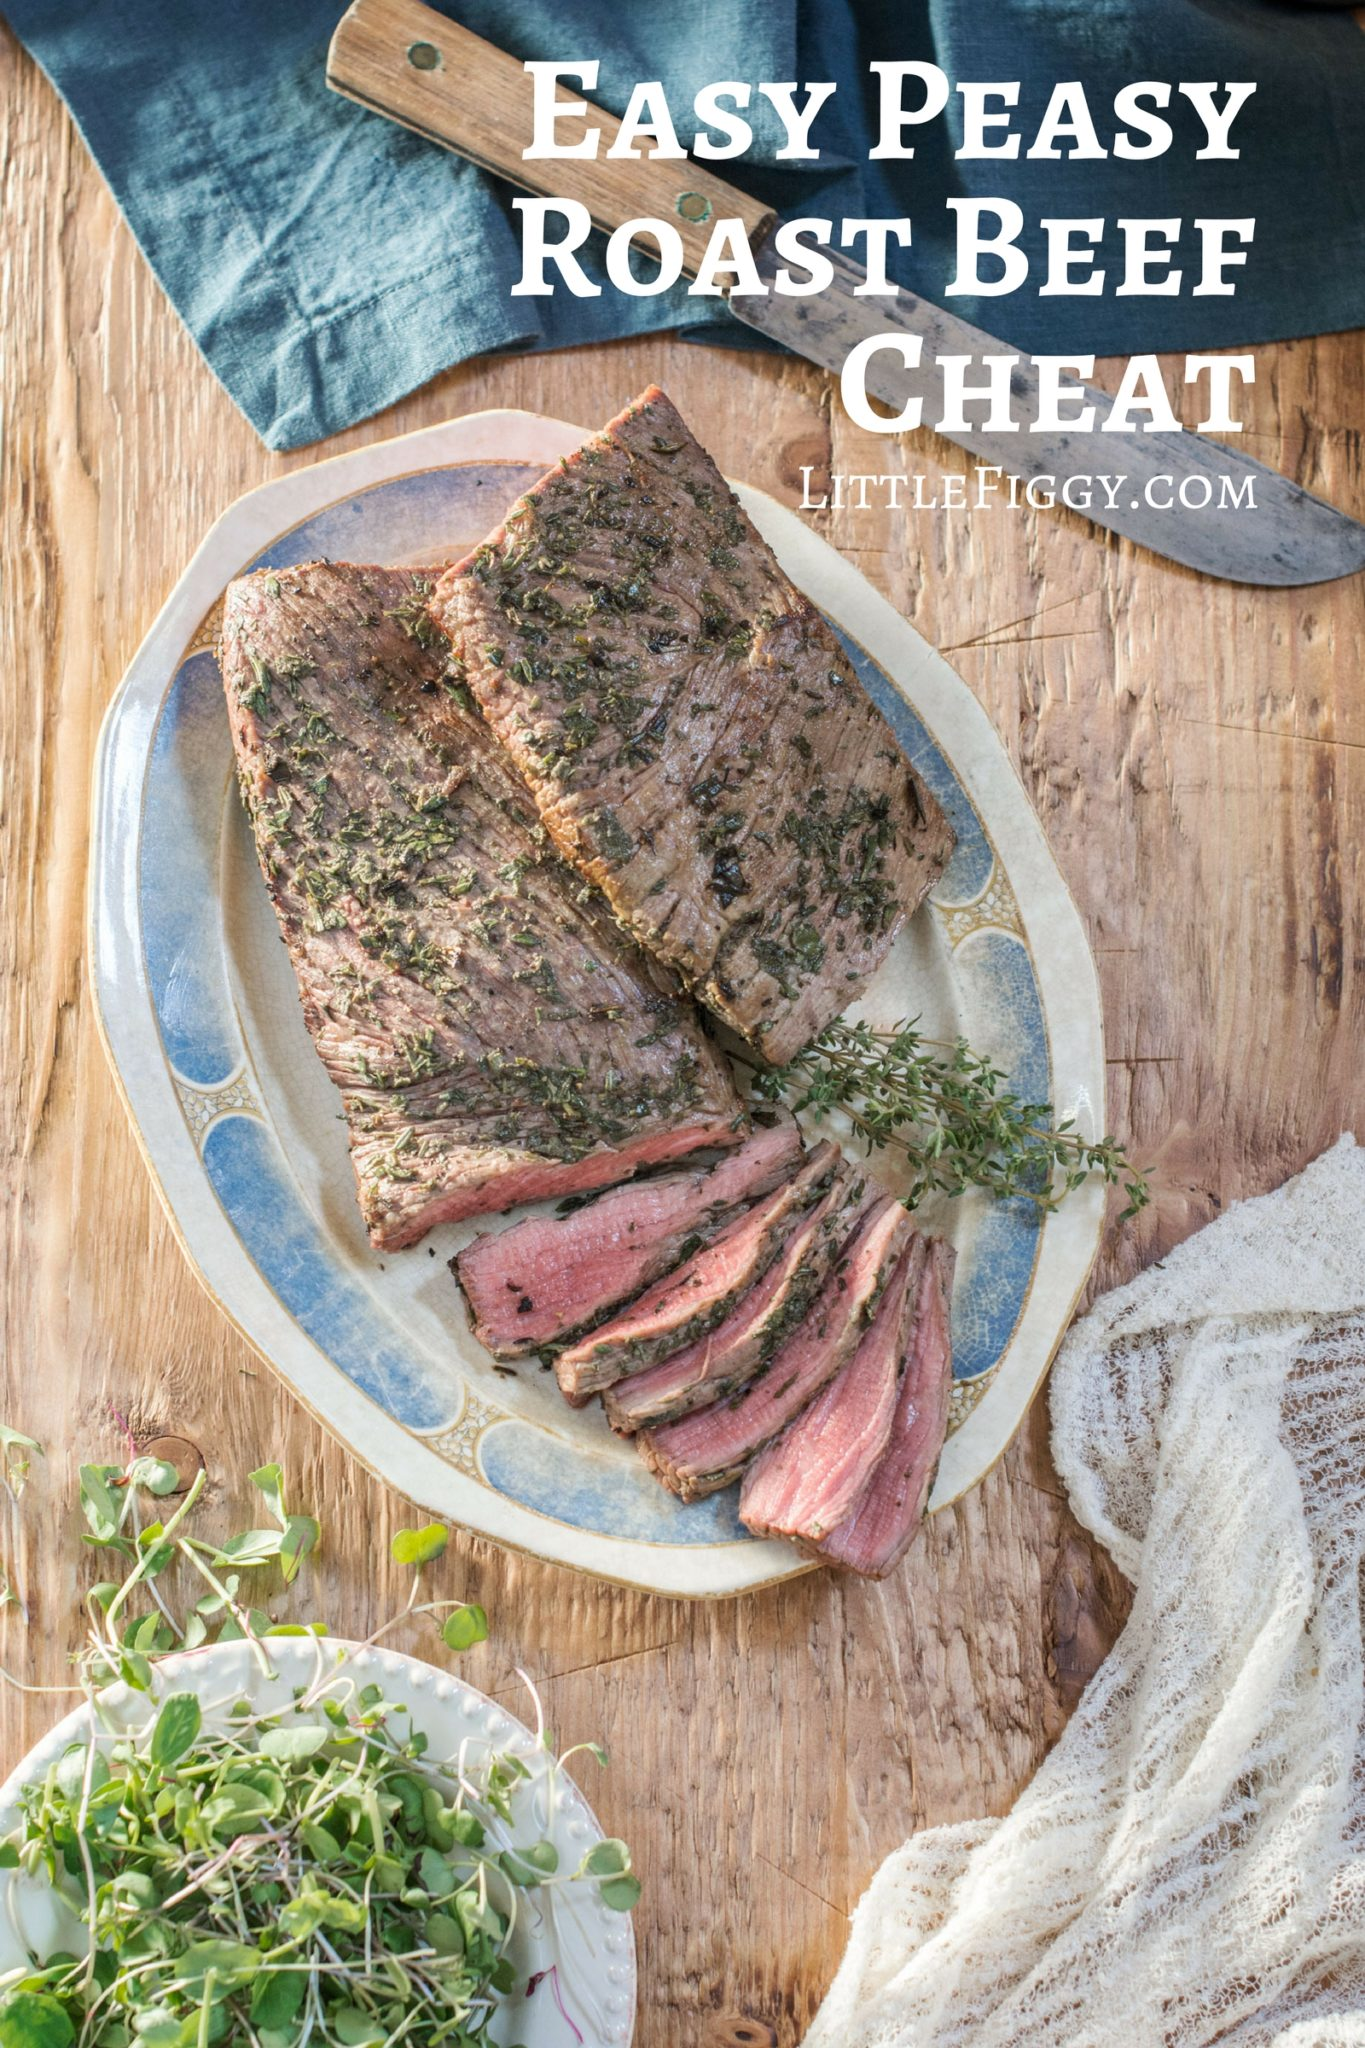 Easy Roast Beef Cheat, a quick kitchen hack that makes an amazingly tasty Roast Beef. Get the recipe at Little Figgy Food.